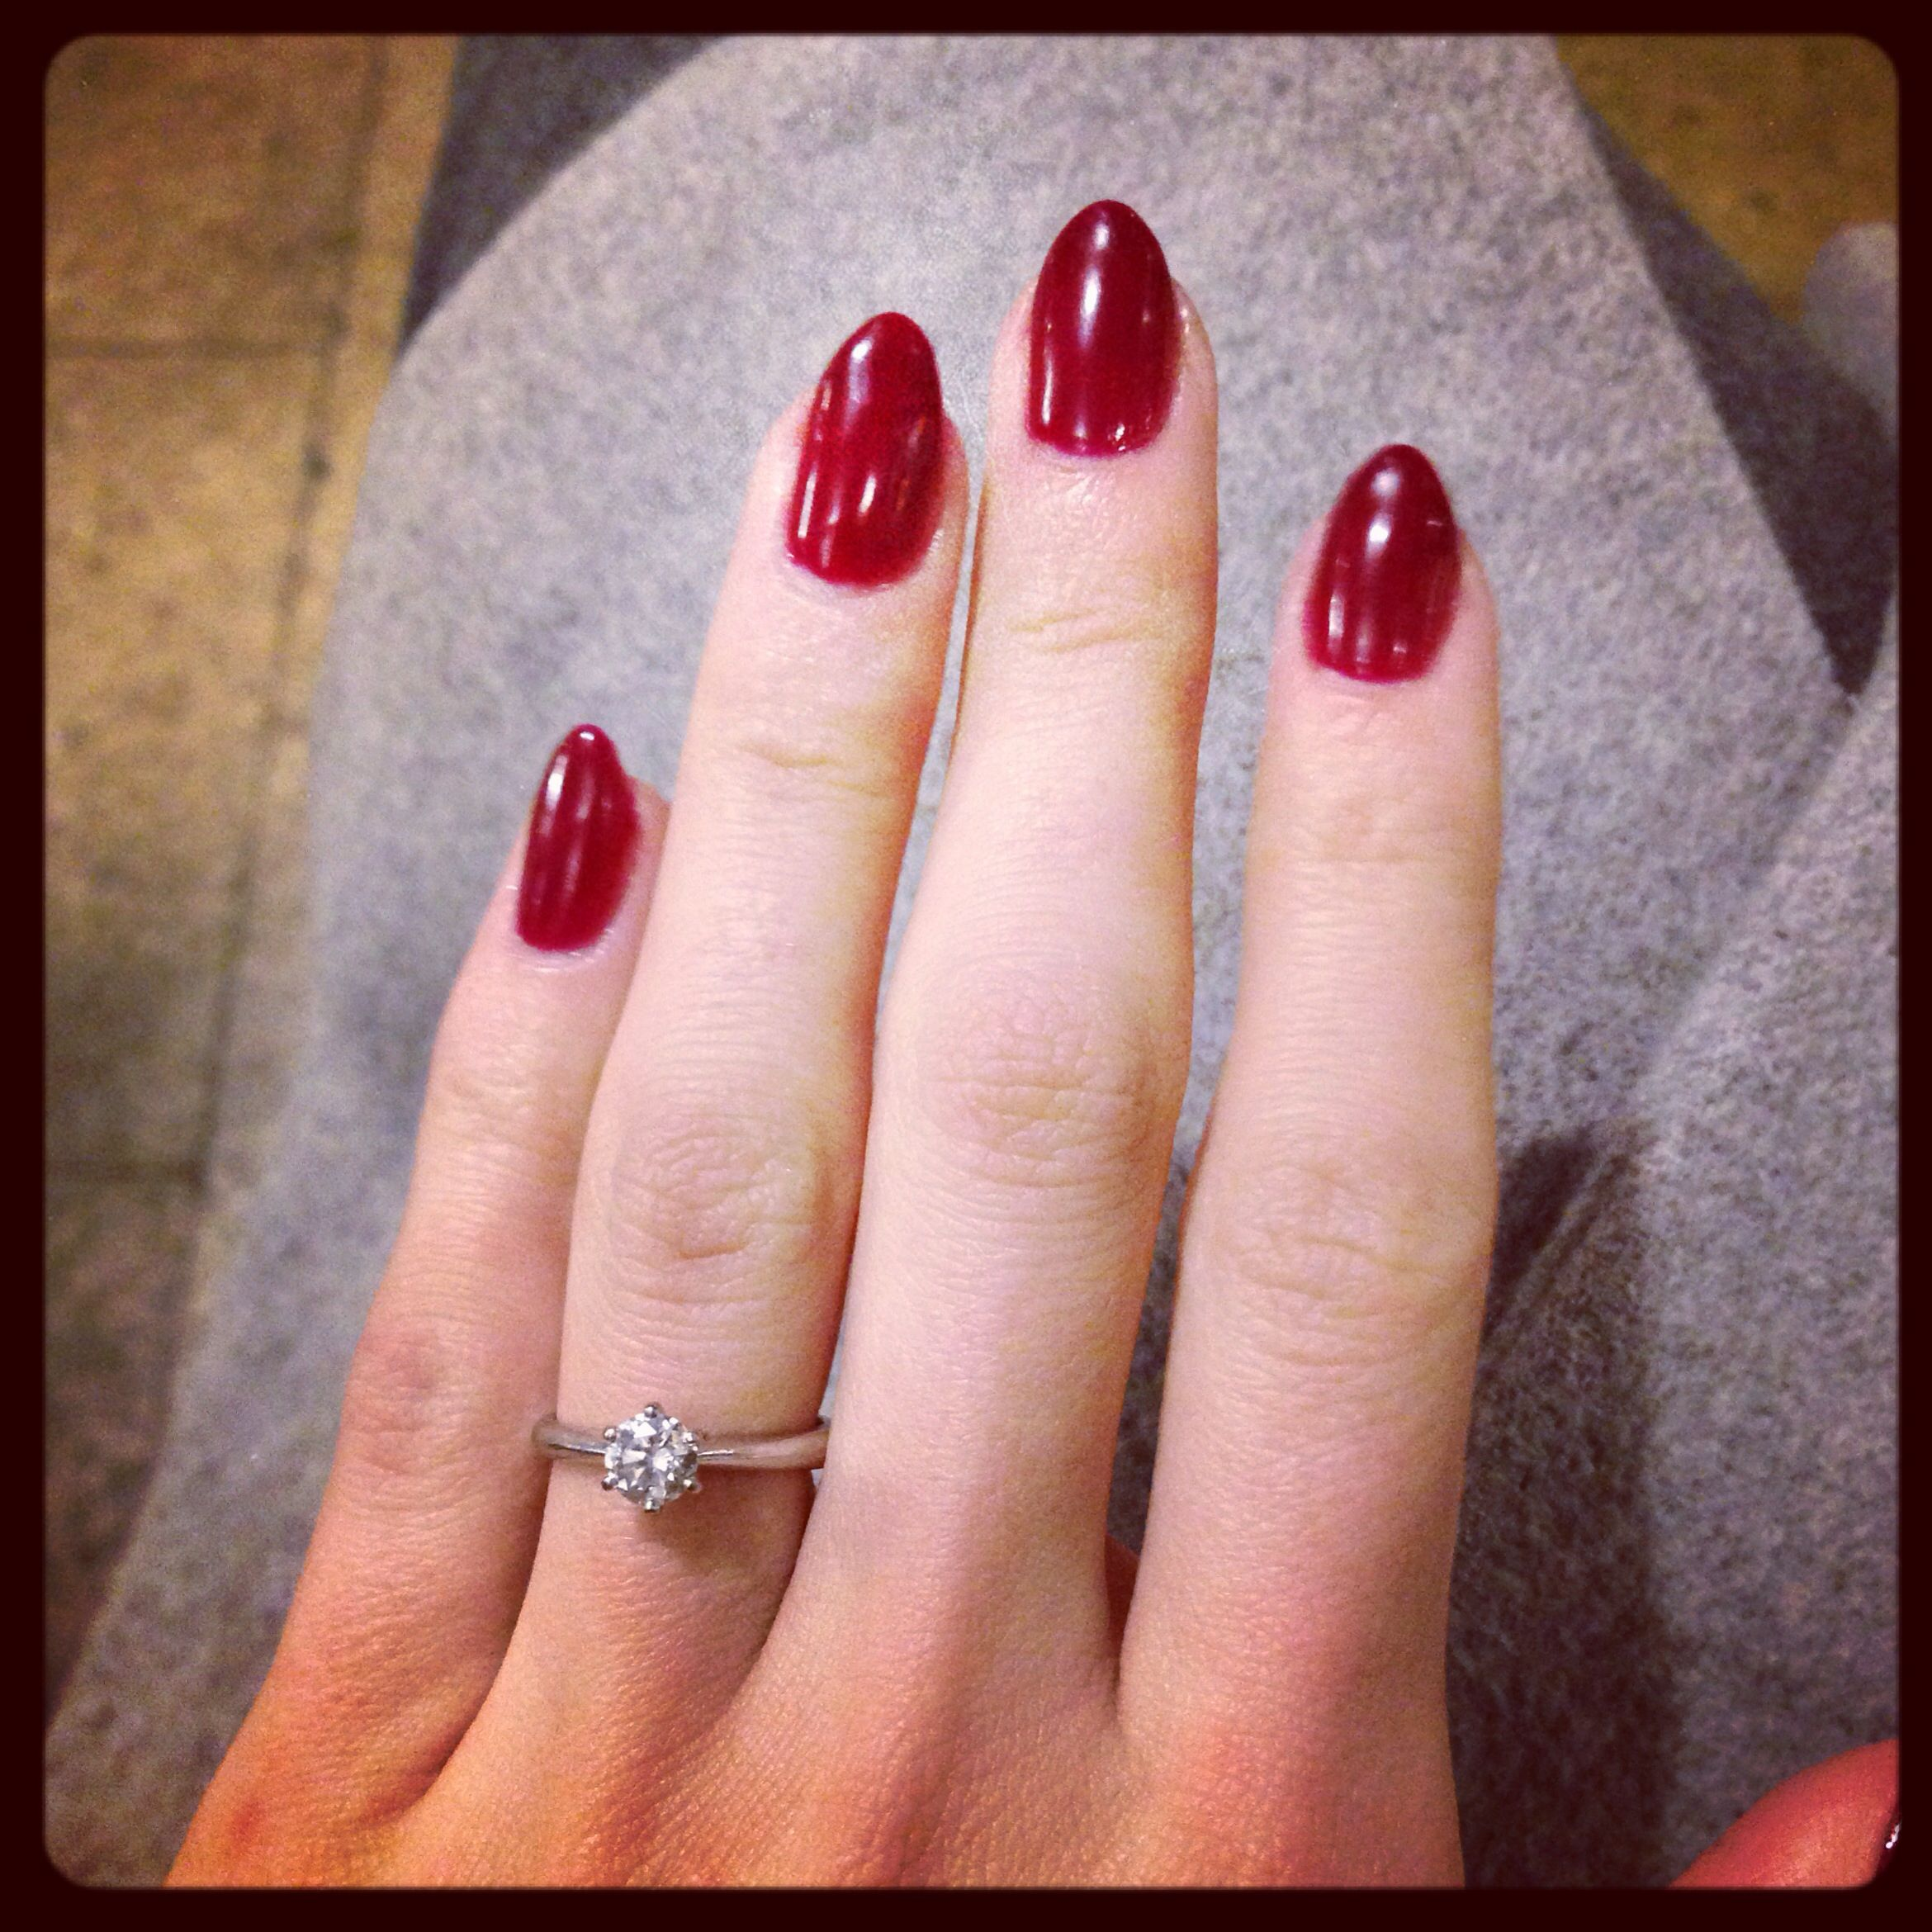 Dark red almond nails | • Hair & makeup • | Pinterest | Almond nails ...